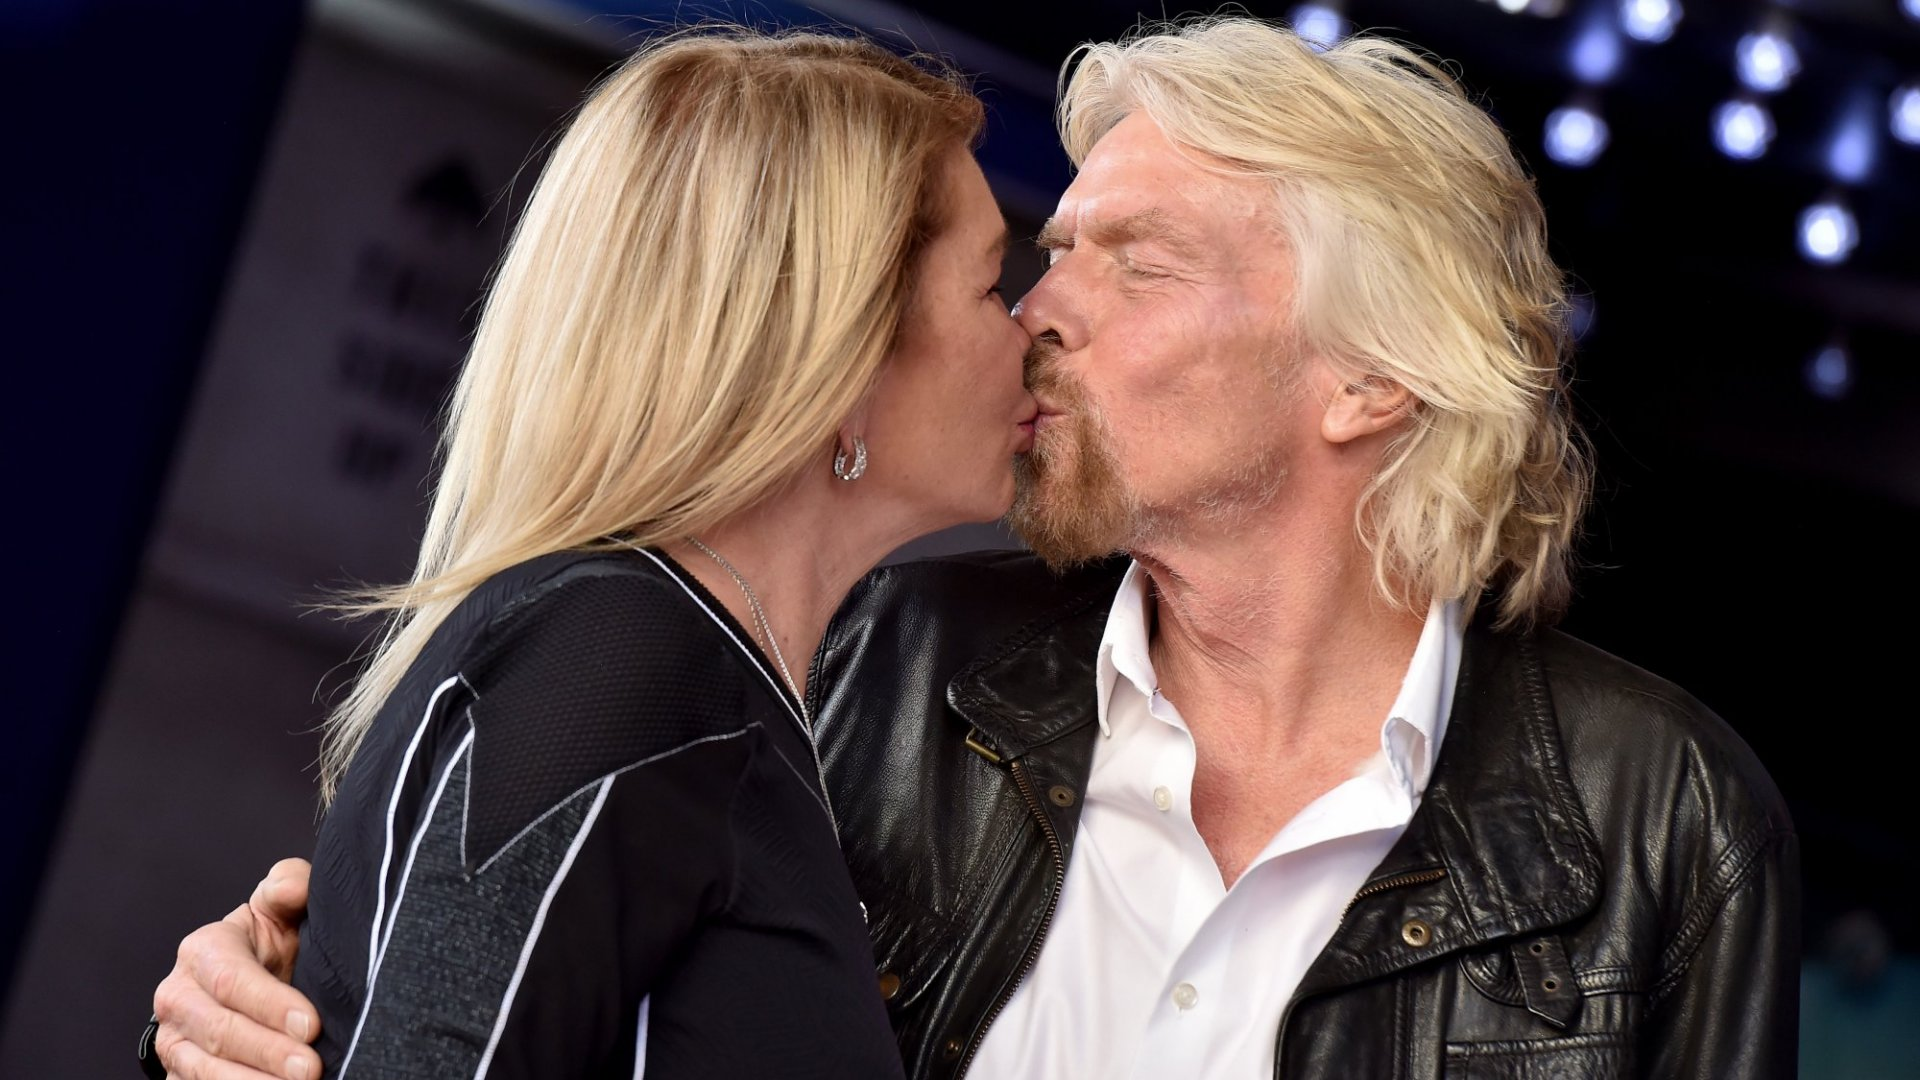 In 12 Words, Richard Branson Lays Out His Best Relationship Advice (Including His Definition of Love)